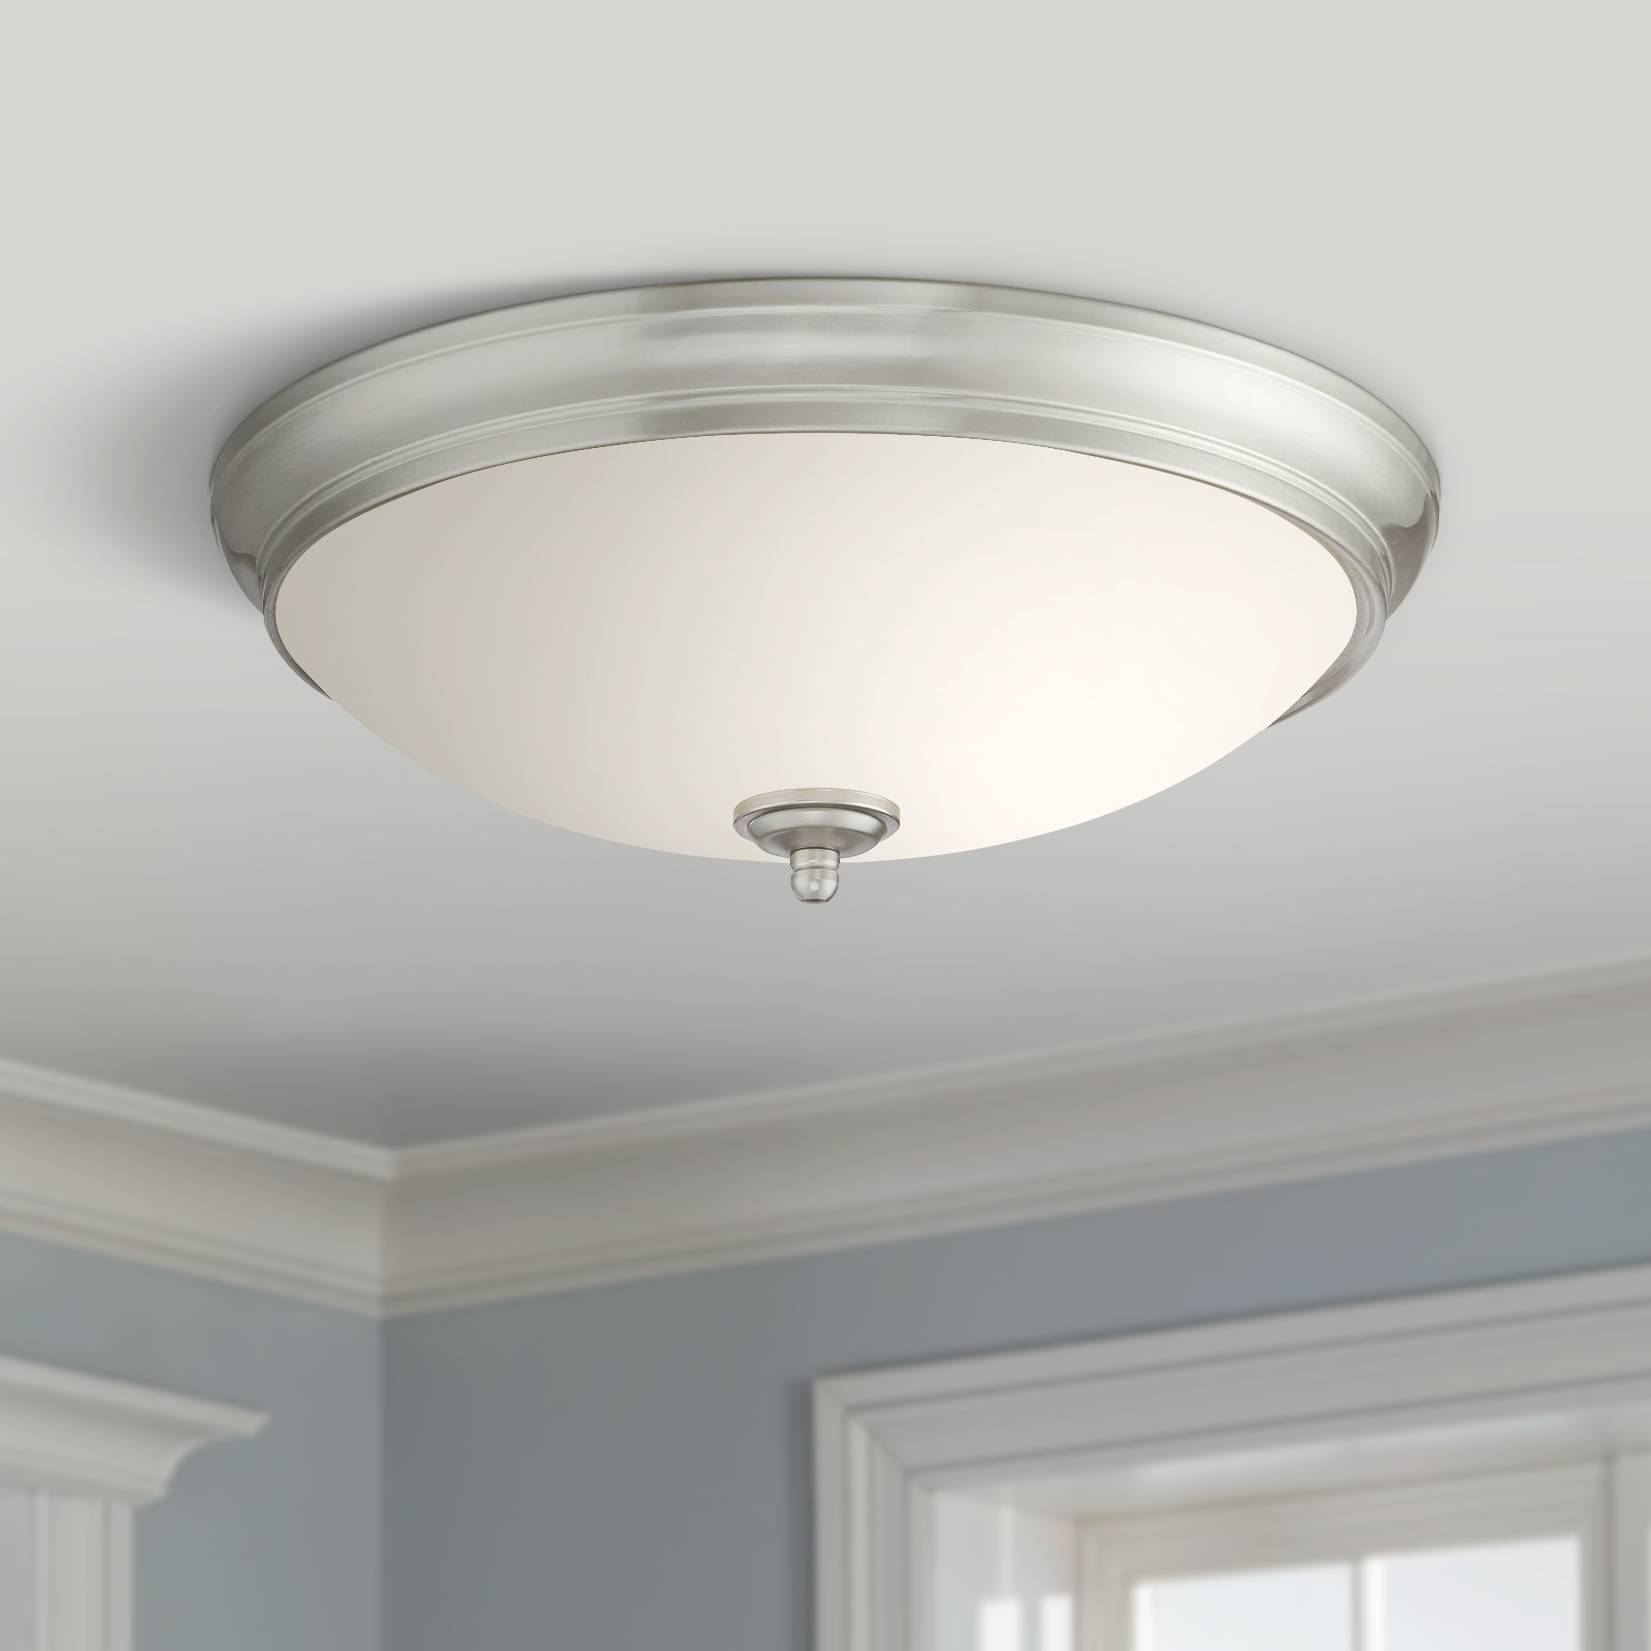 Melana 13 wide brushed nickel led ceiling light